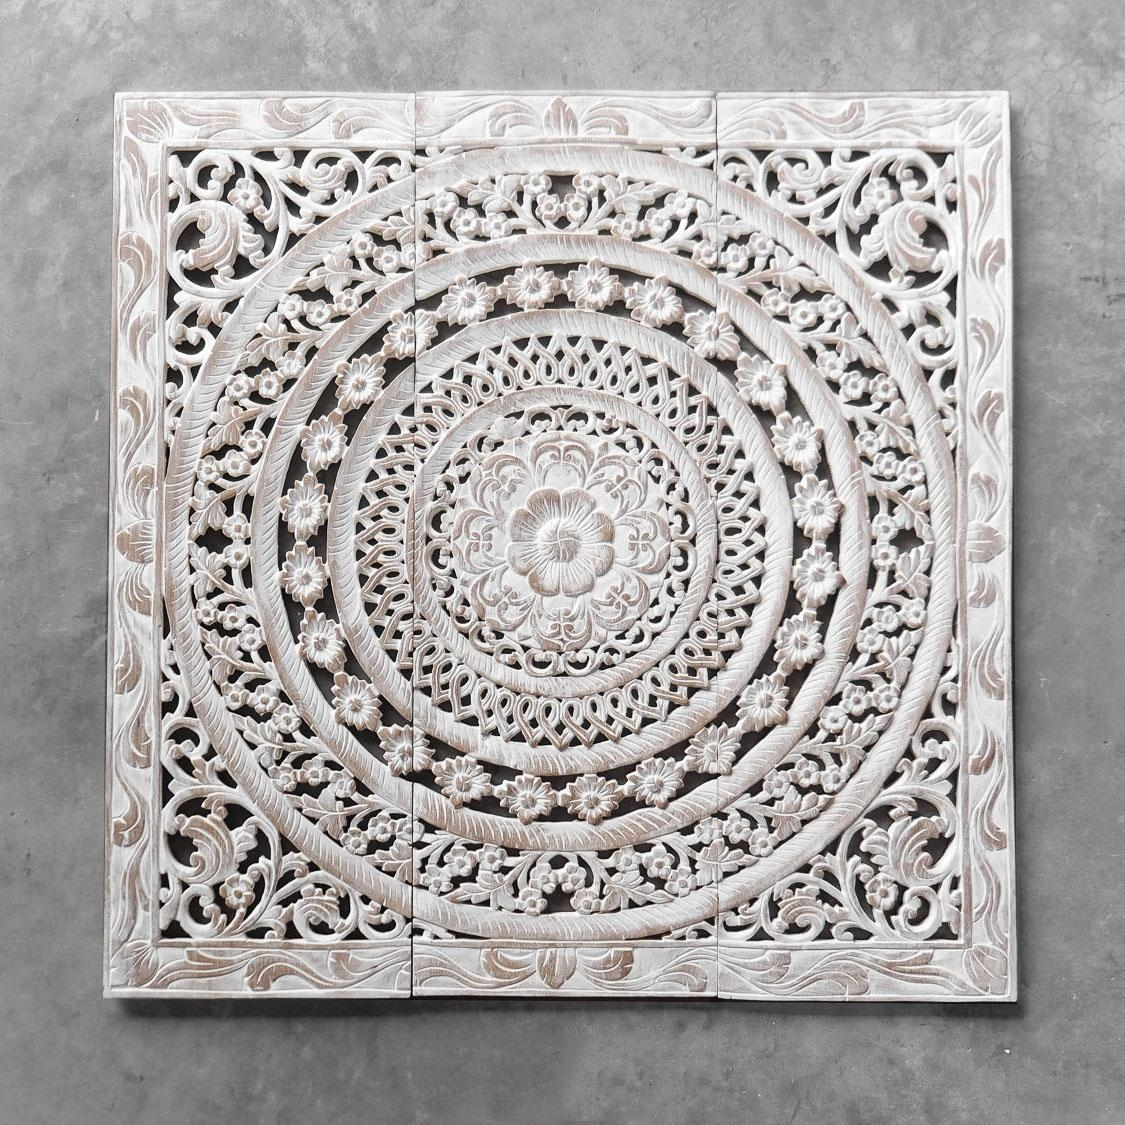 Wood Carved Wall Art | Roselawnlutheran For Asian Wall Art Panels (View 10 of 20)